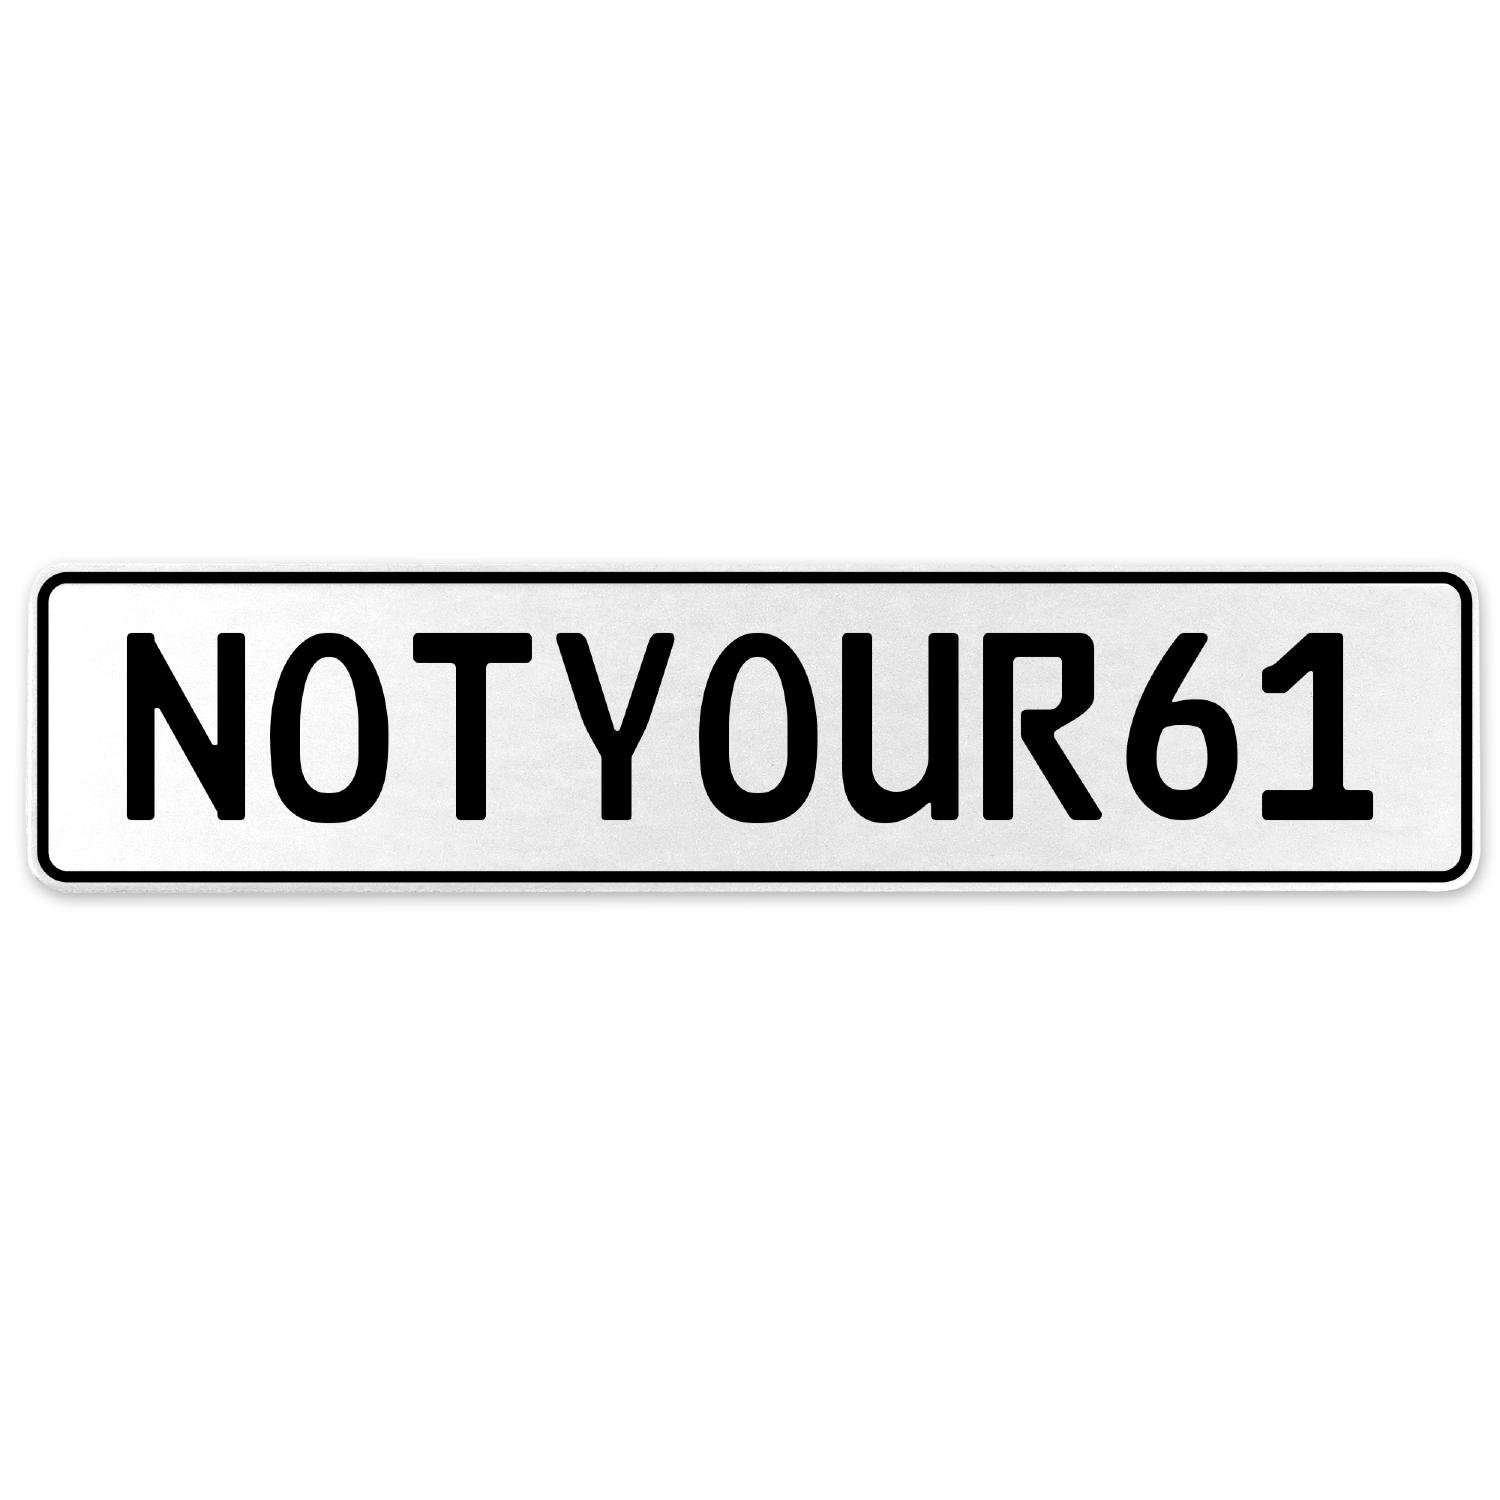 Vintage Parts 555450 NOTYOUR61 White Stamped Aluminum European License Plate